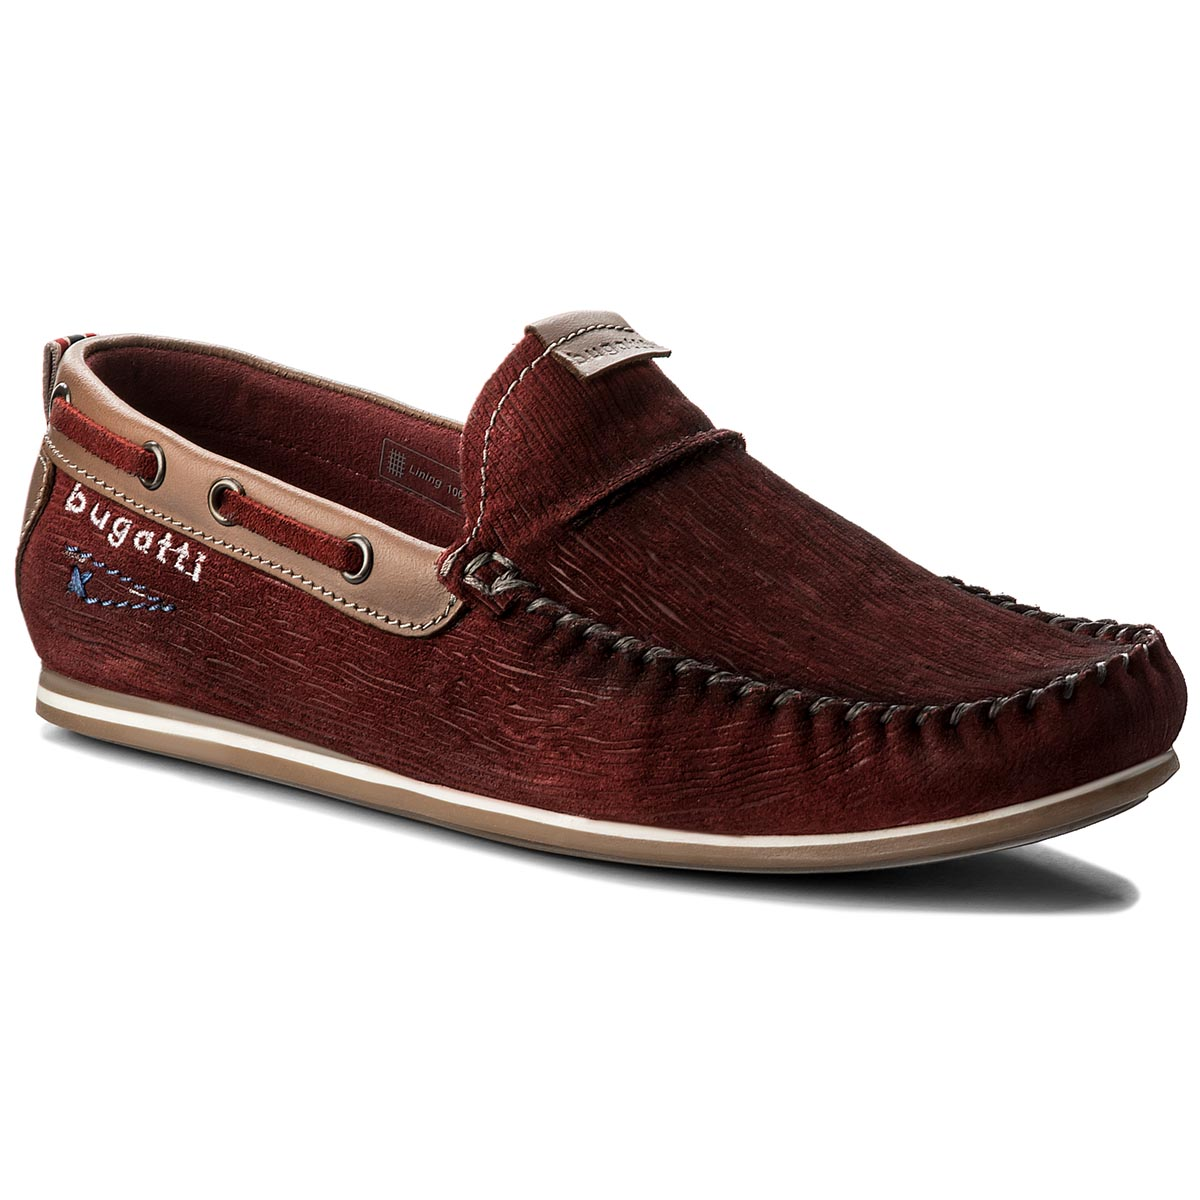 Mocasini BUGATTI - 321-46960-1400-3100 Dark Red